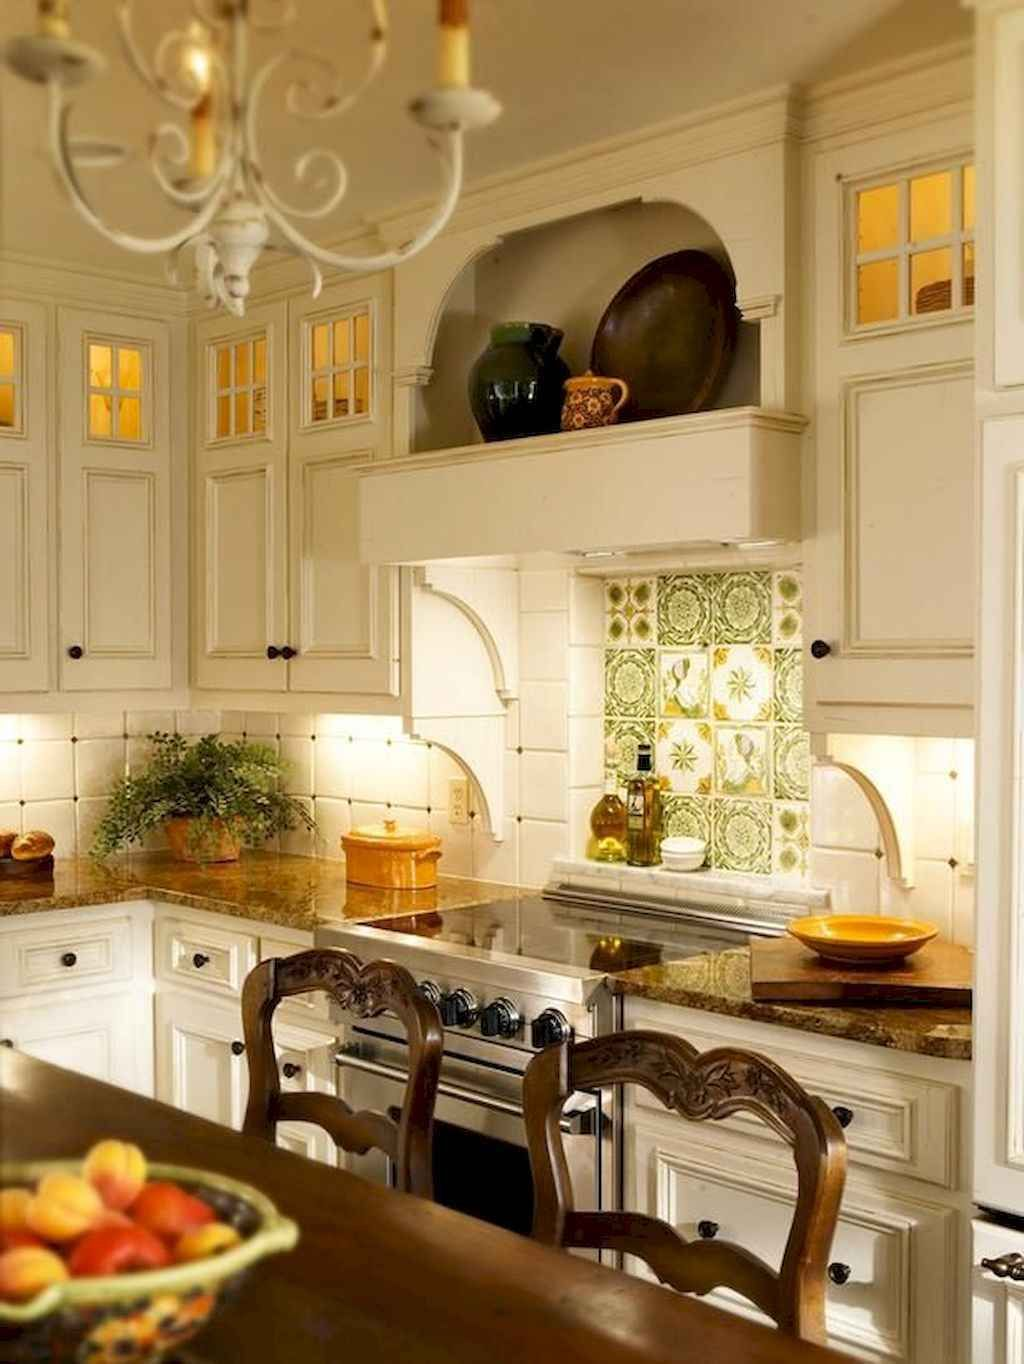 13 french country kitchen ideas you ll want to copy asap country kitchen french country on kitchen remodel french country id=53025